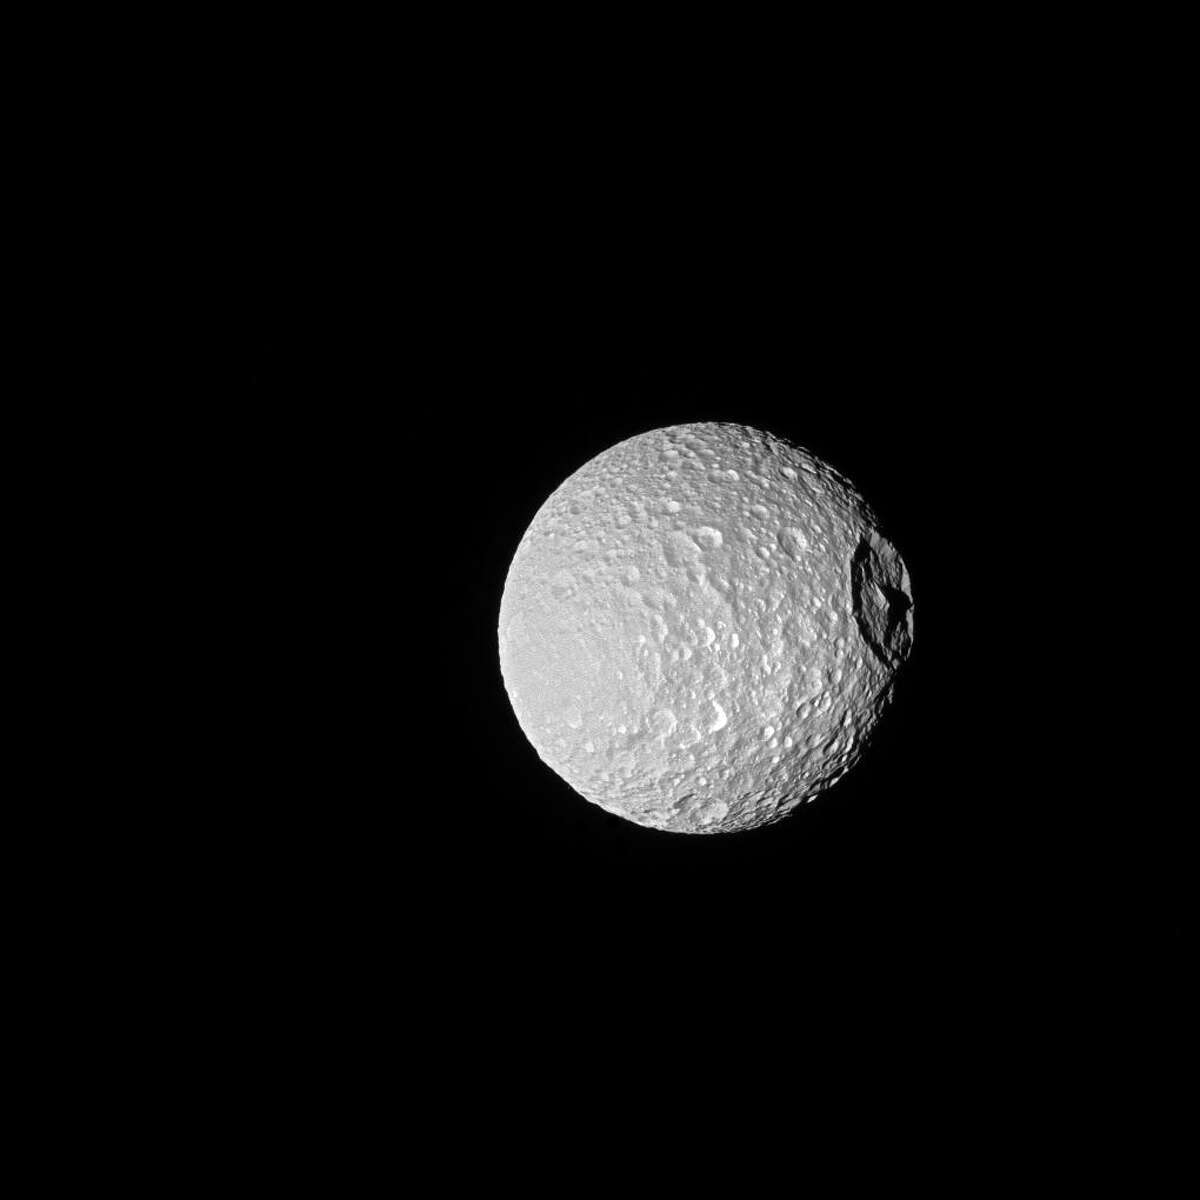 """PHOTOS: Saturn and her moons up-close """"Mimas,"""" one of Saturn's moons which resembles the Death Star. Click through to seeNASA's latest images that show how astonishingly large Saturn's rings are."""